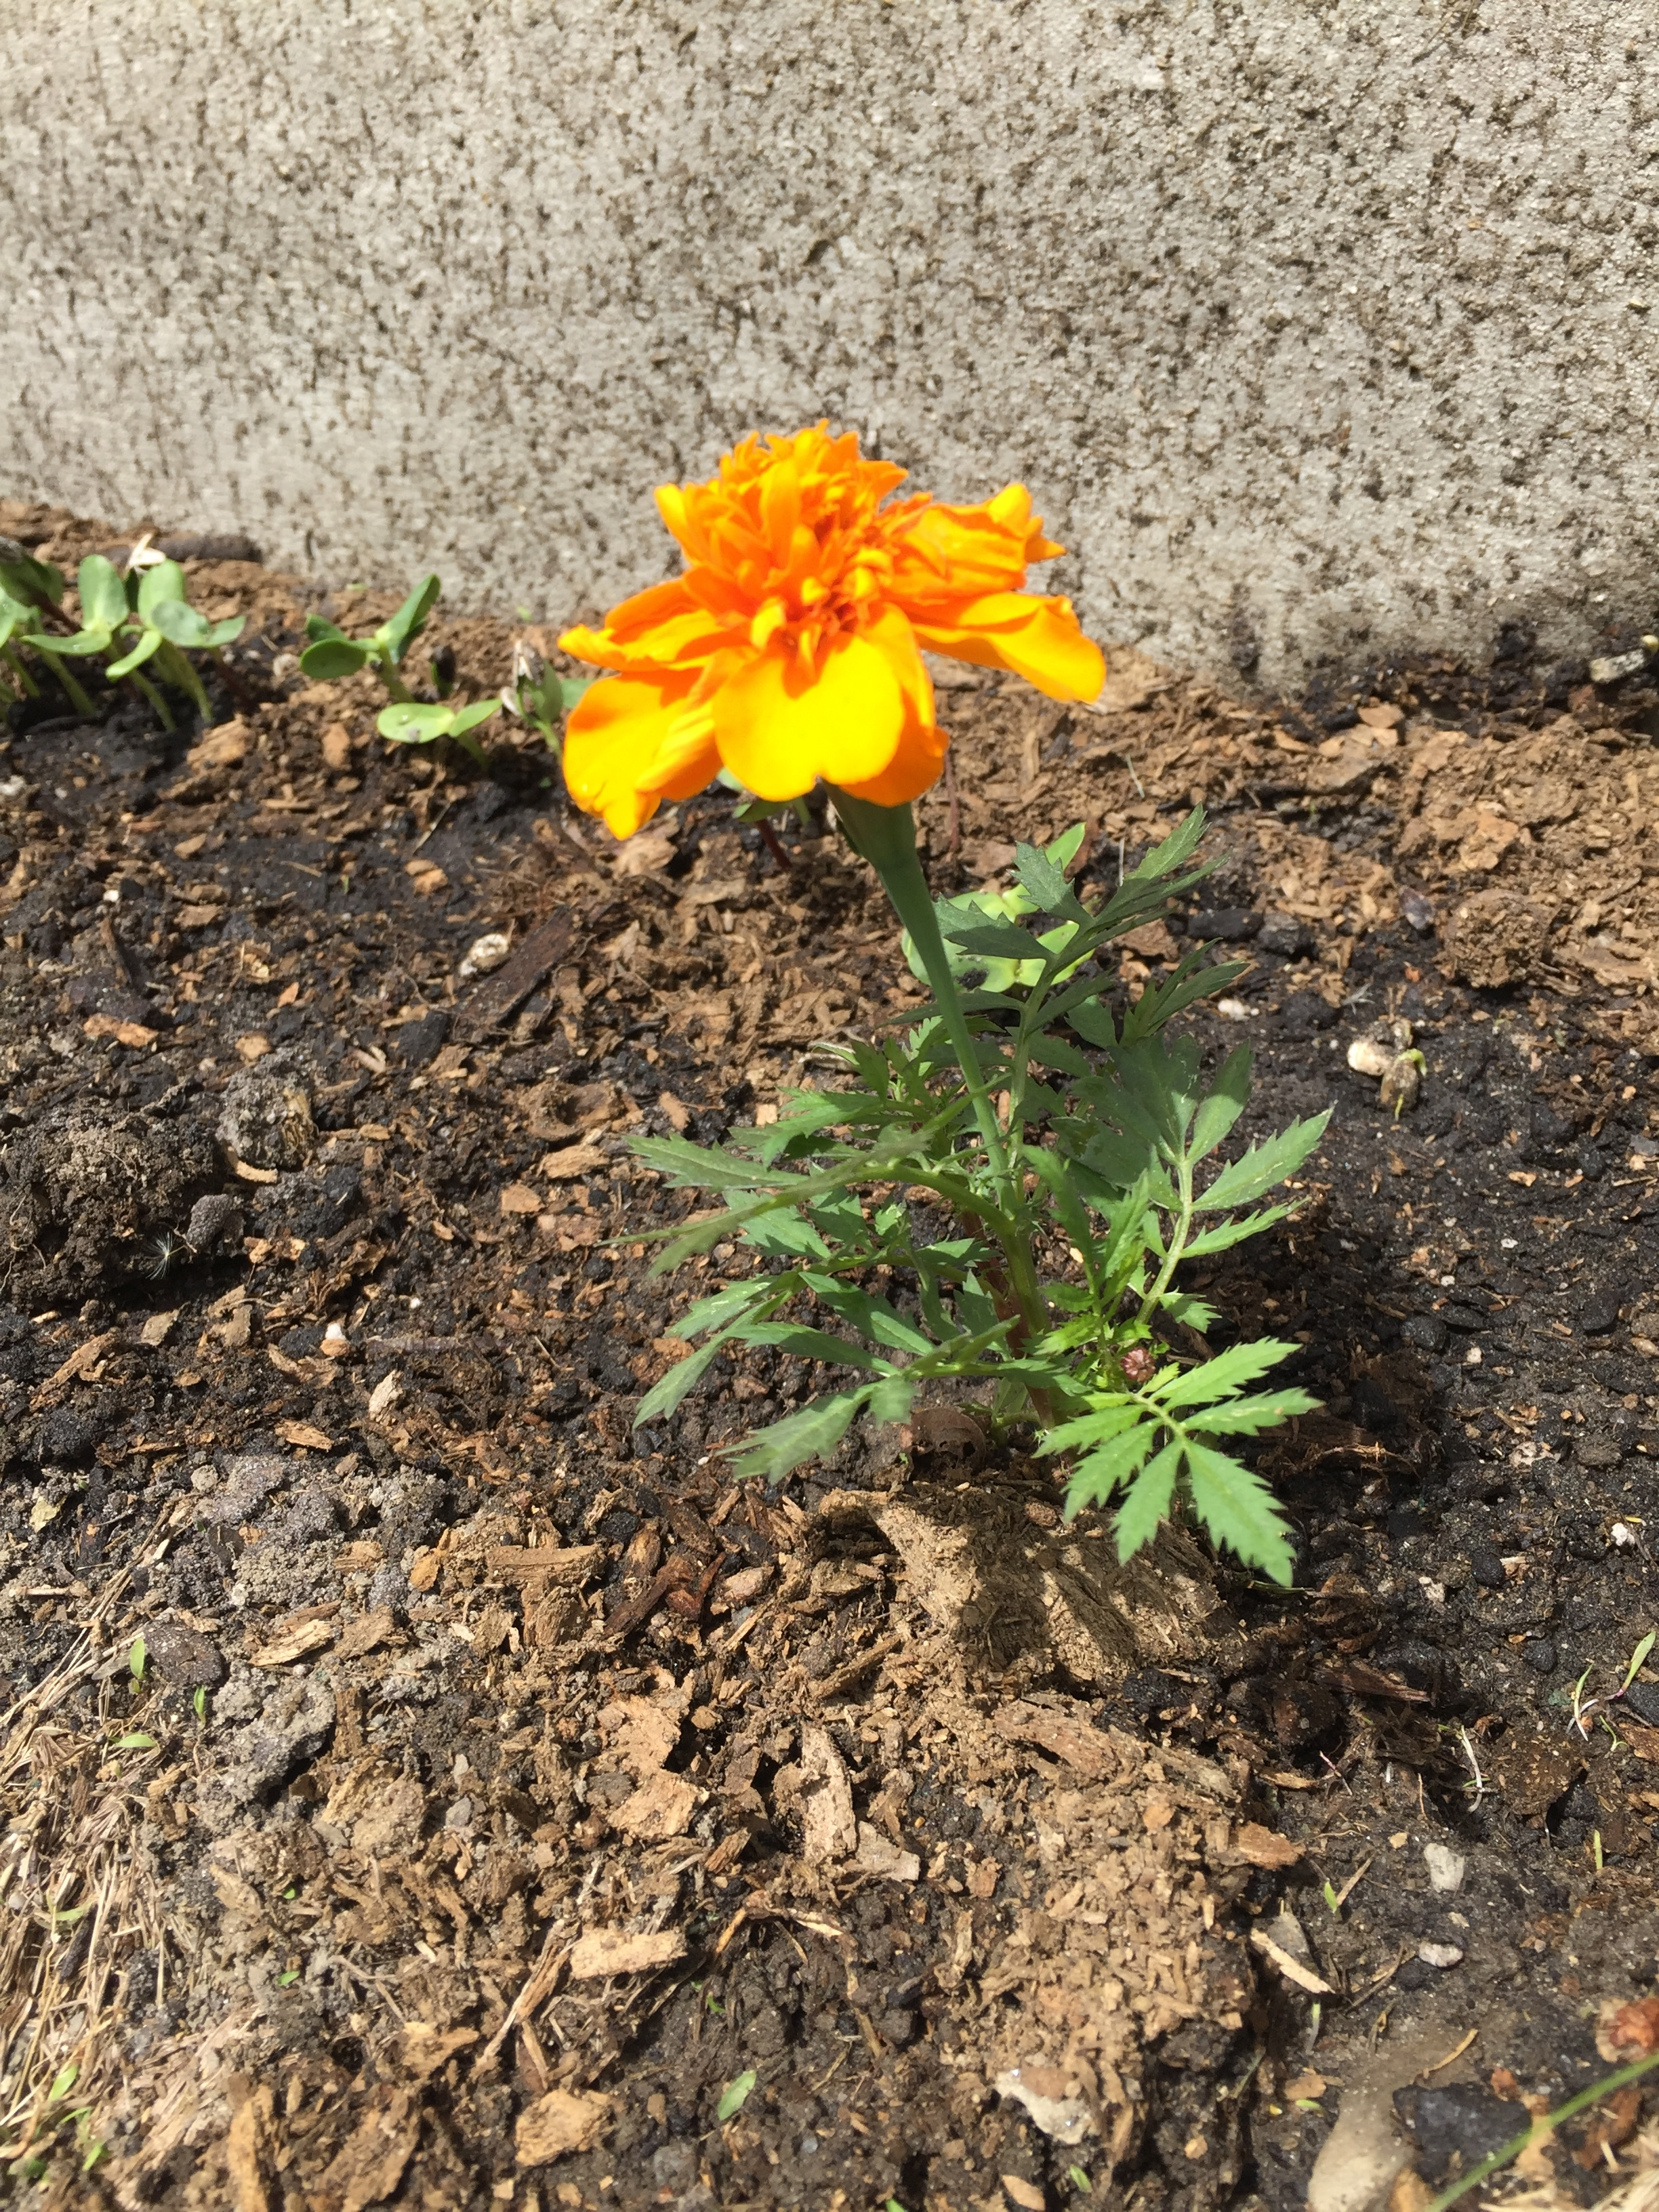 I planted six marigolds in the sunflower garden to keep away the undesirables!